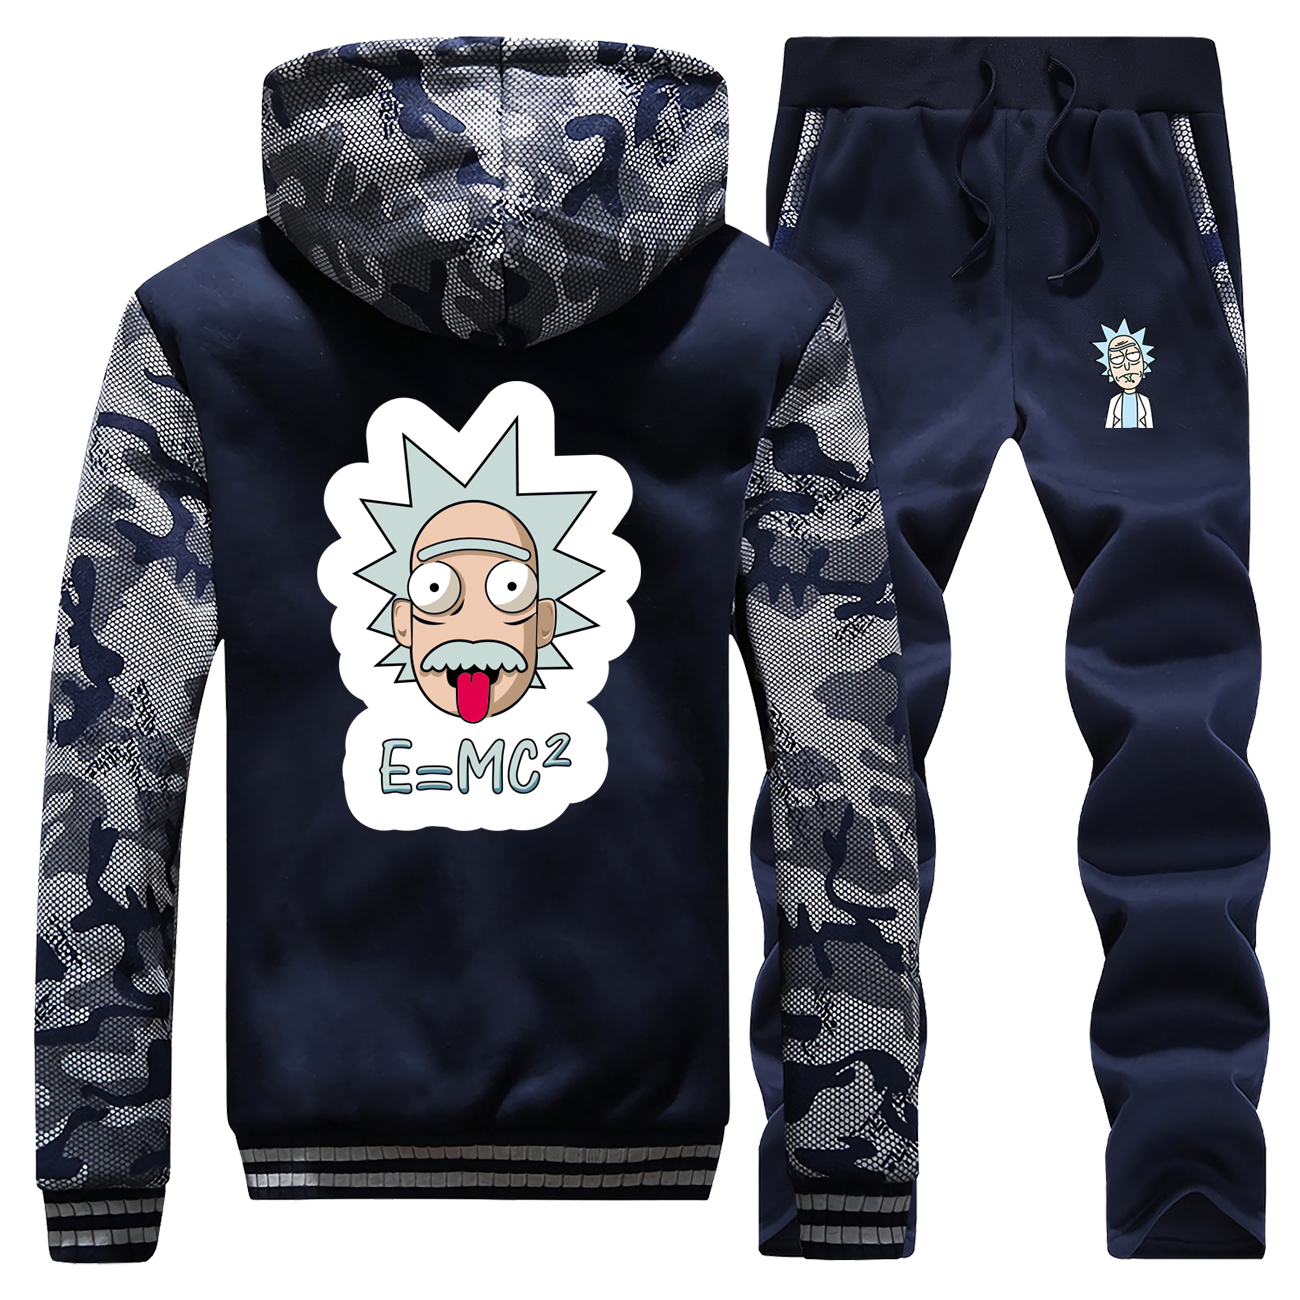 Rick And Morty Hoodies Pant Set Men Funny Einstein Caroon Tracksuit Coat Track Suit Winter Thick Fleece Jacket Camo 2 Piece Sets